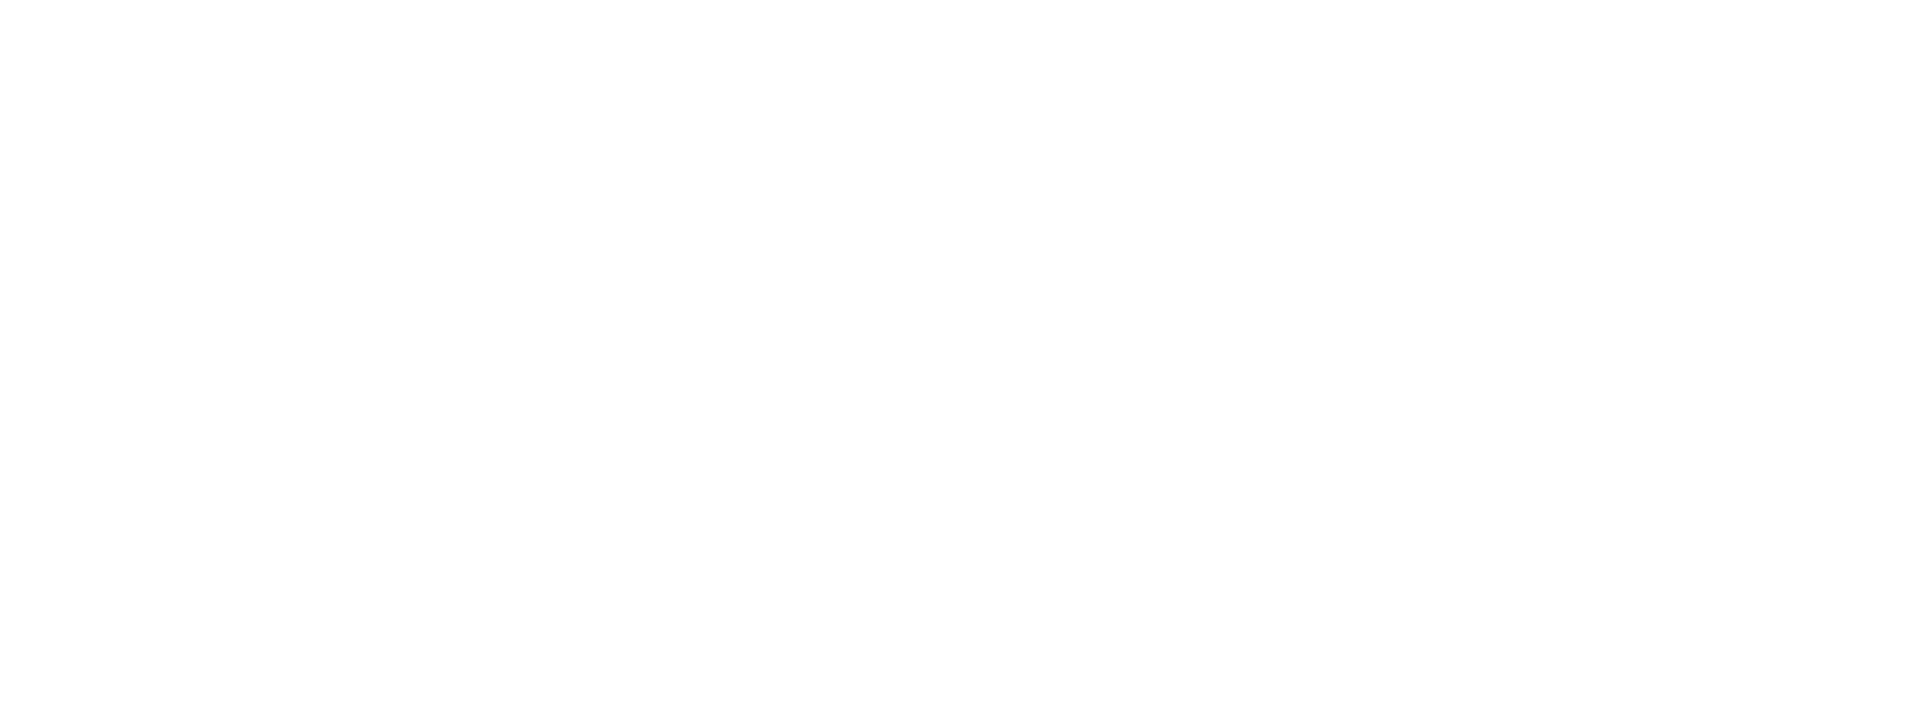 layout design for the CUNY School of Labor and Urban Studies banner